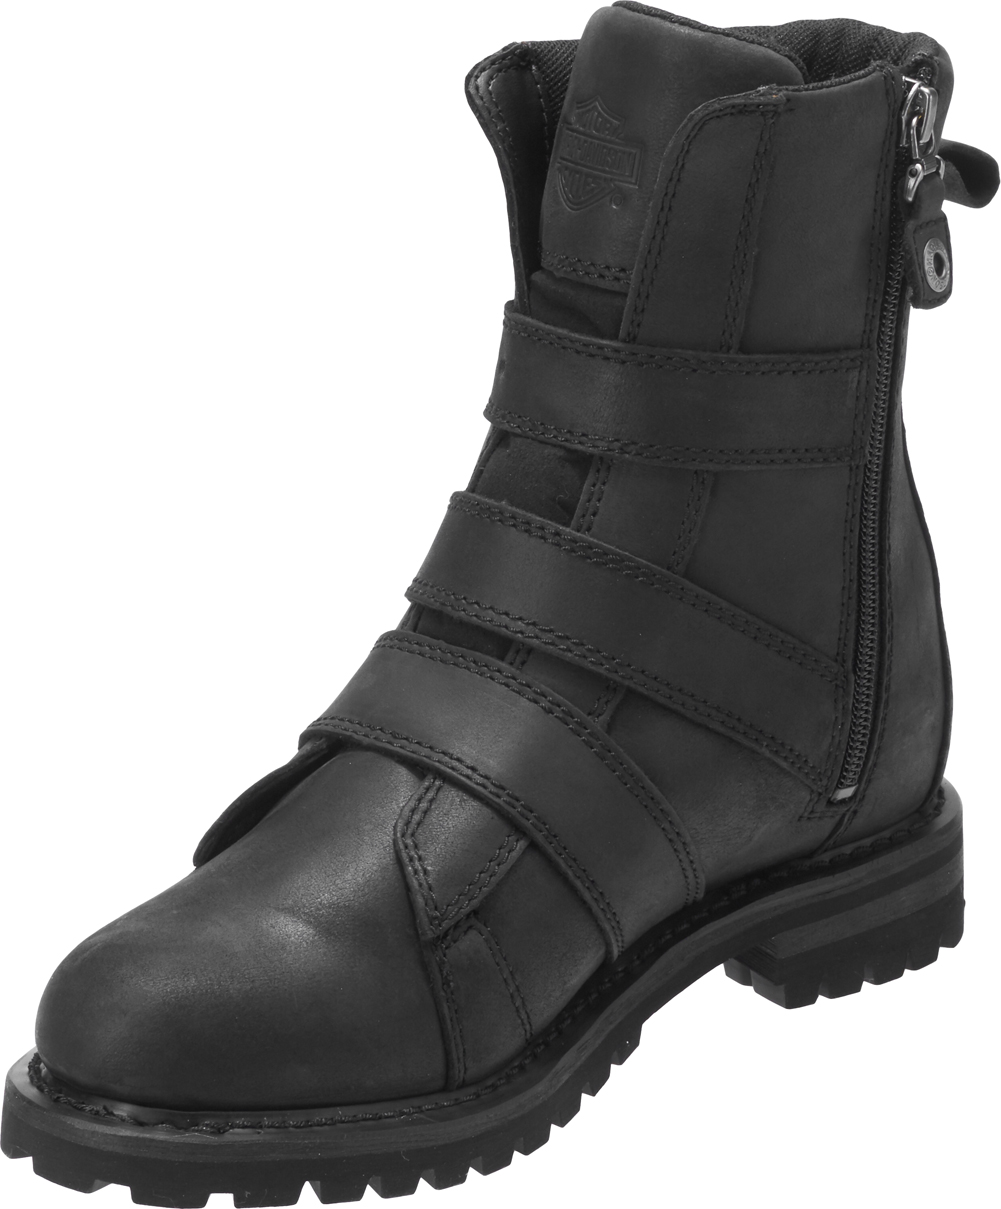 Harley-Davidson-Women-039-s-Hemford-6-75-Inch-Black-or-Brown-Motorcycle-Boots-D84470 thumbnail 6